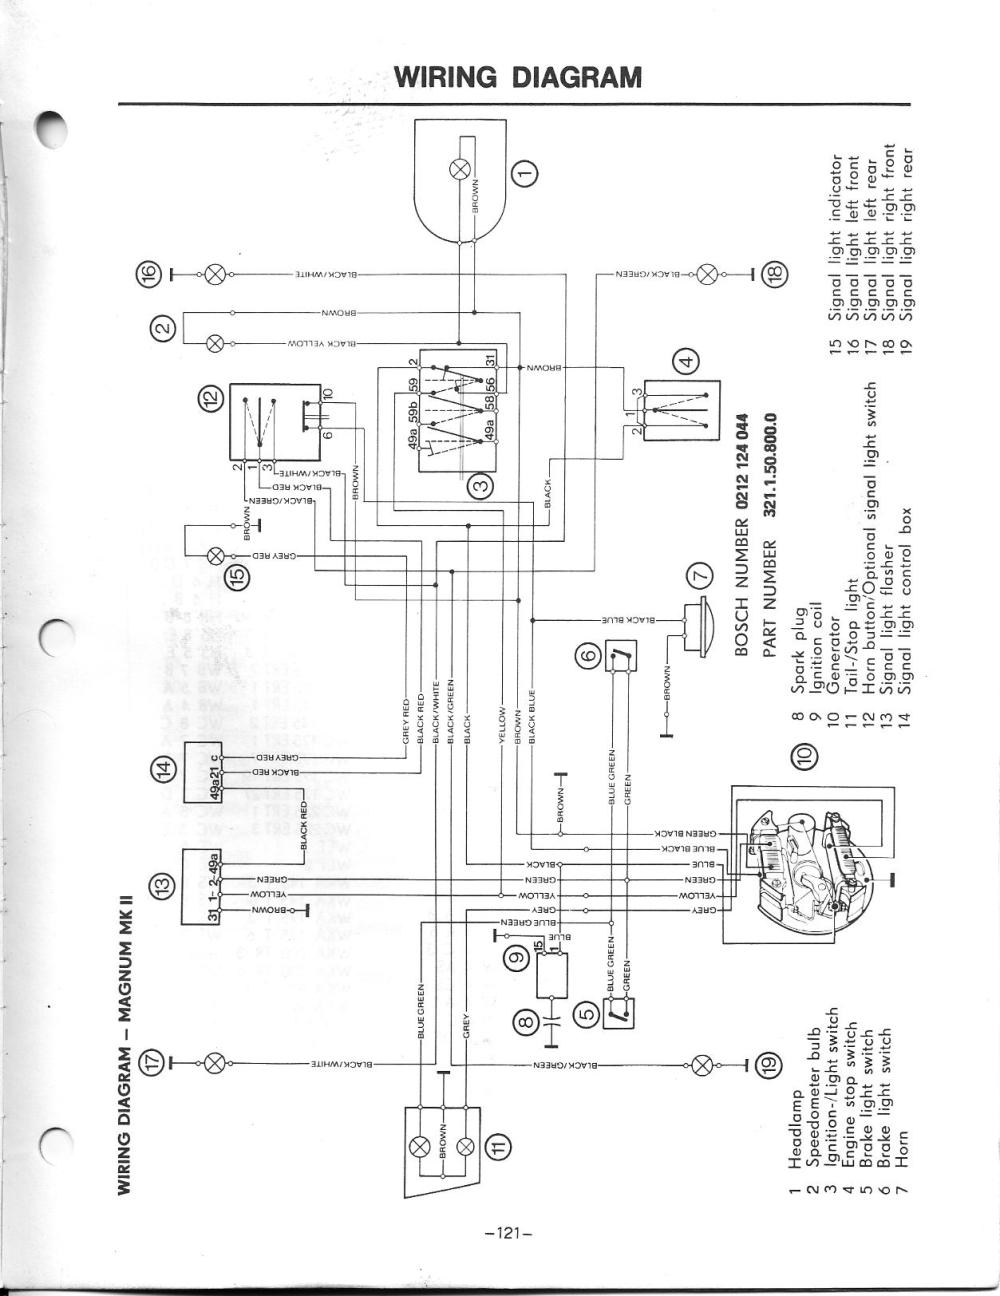 medium resolution of puch newport wiring diagram puch free engine image for e50 puch vsza50 puch e50